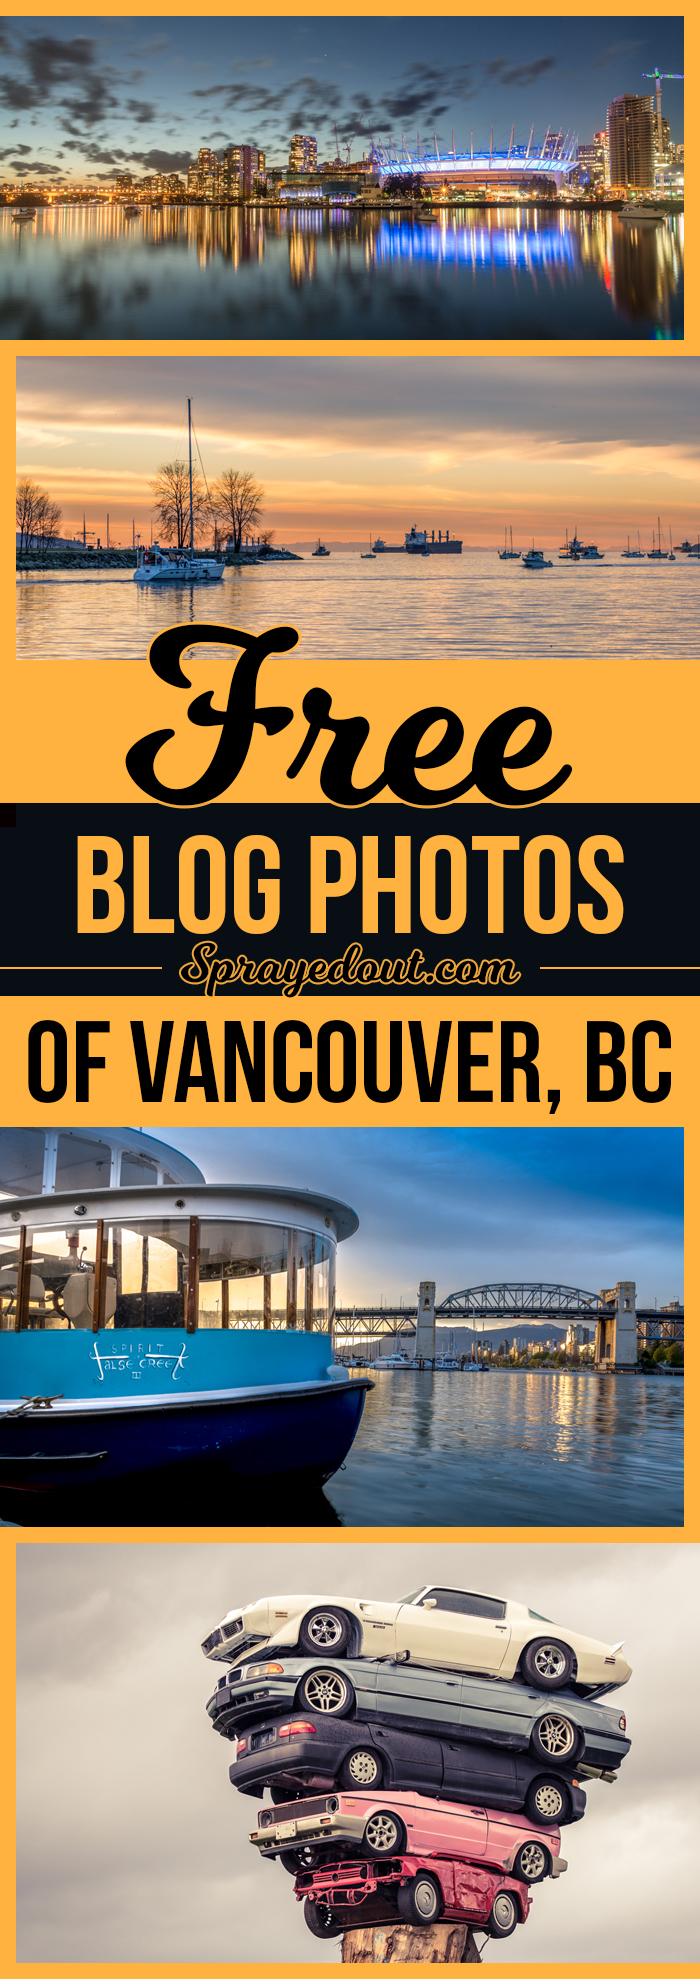 Free Blog Photos of Vancouver, BC, Canada